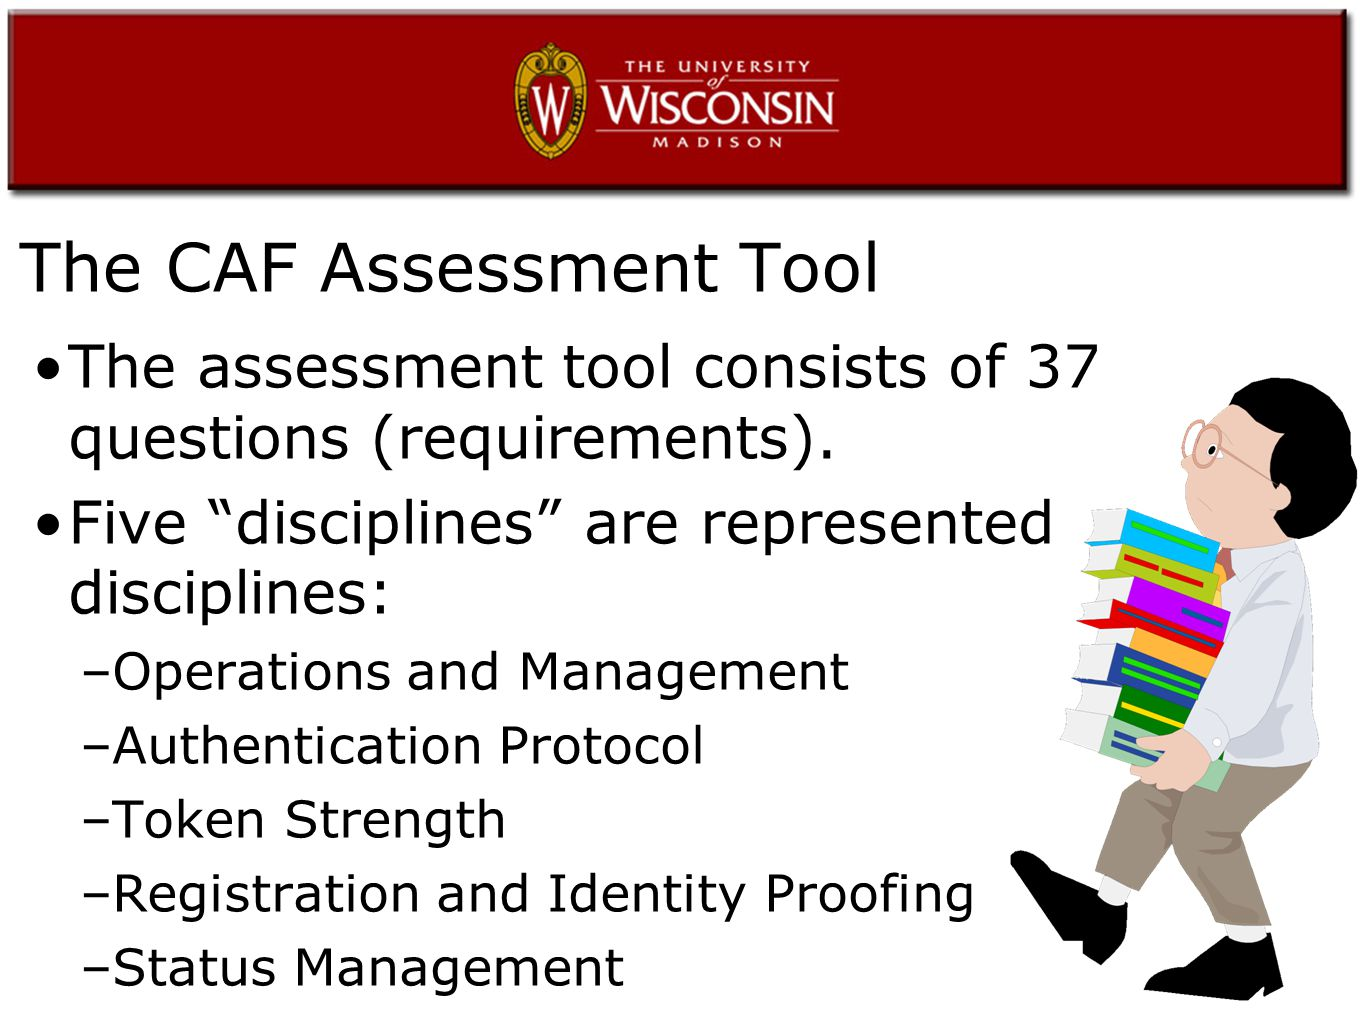 http://downloads.clipart.com/20398418.gif?t=1202940069&h=8cc1c9c2b1acac222022c31830f96681&u=swahe The CAF Assessment Tool The assessment tool consists of 37 questions (requirements).